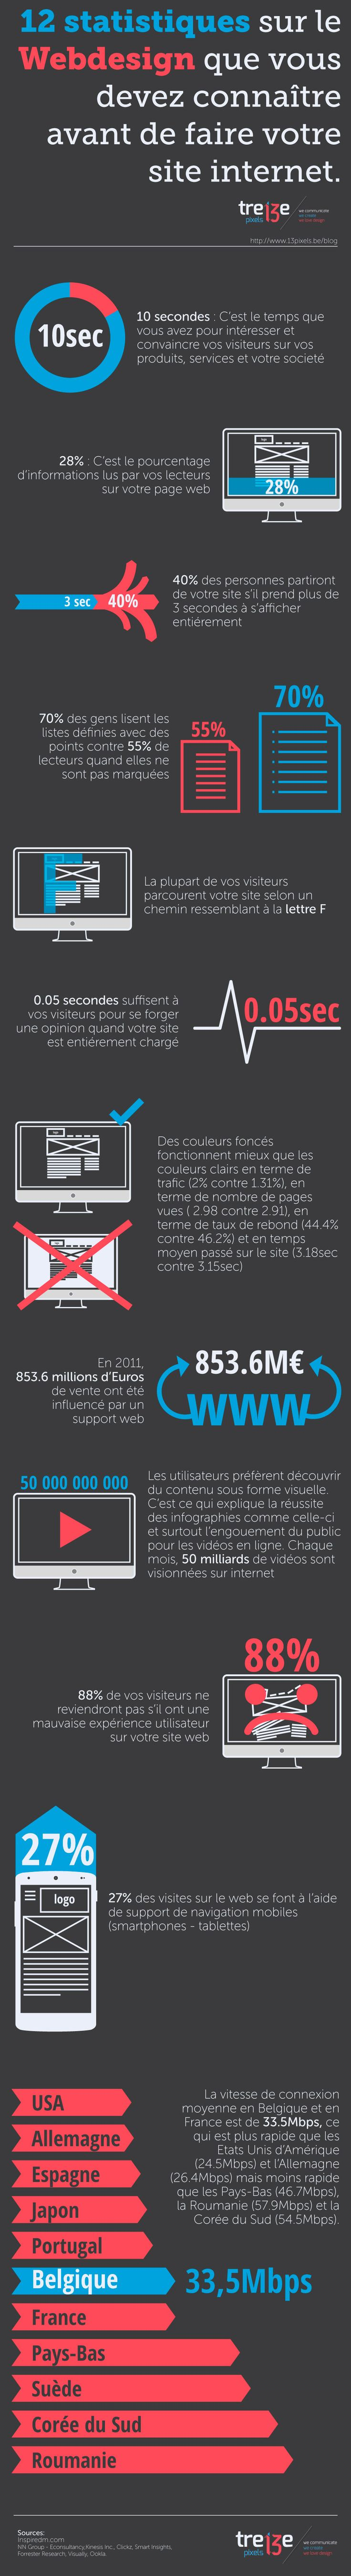 faire son cv sur un site internet